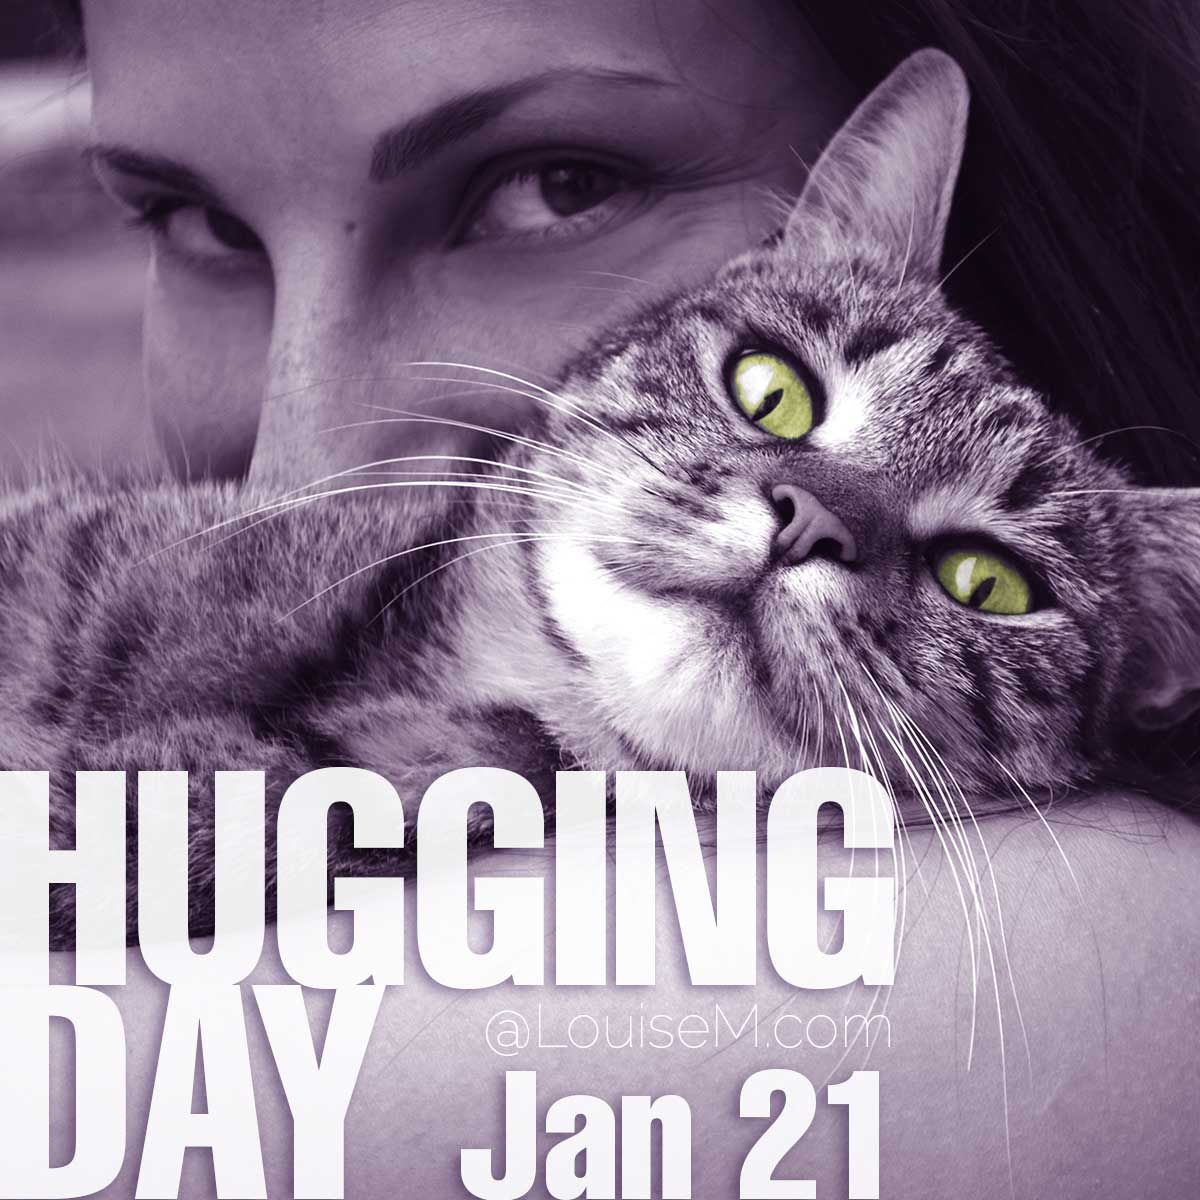 Hugging Day text on photo of woman hugging cat.